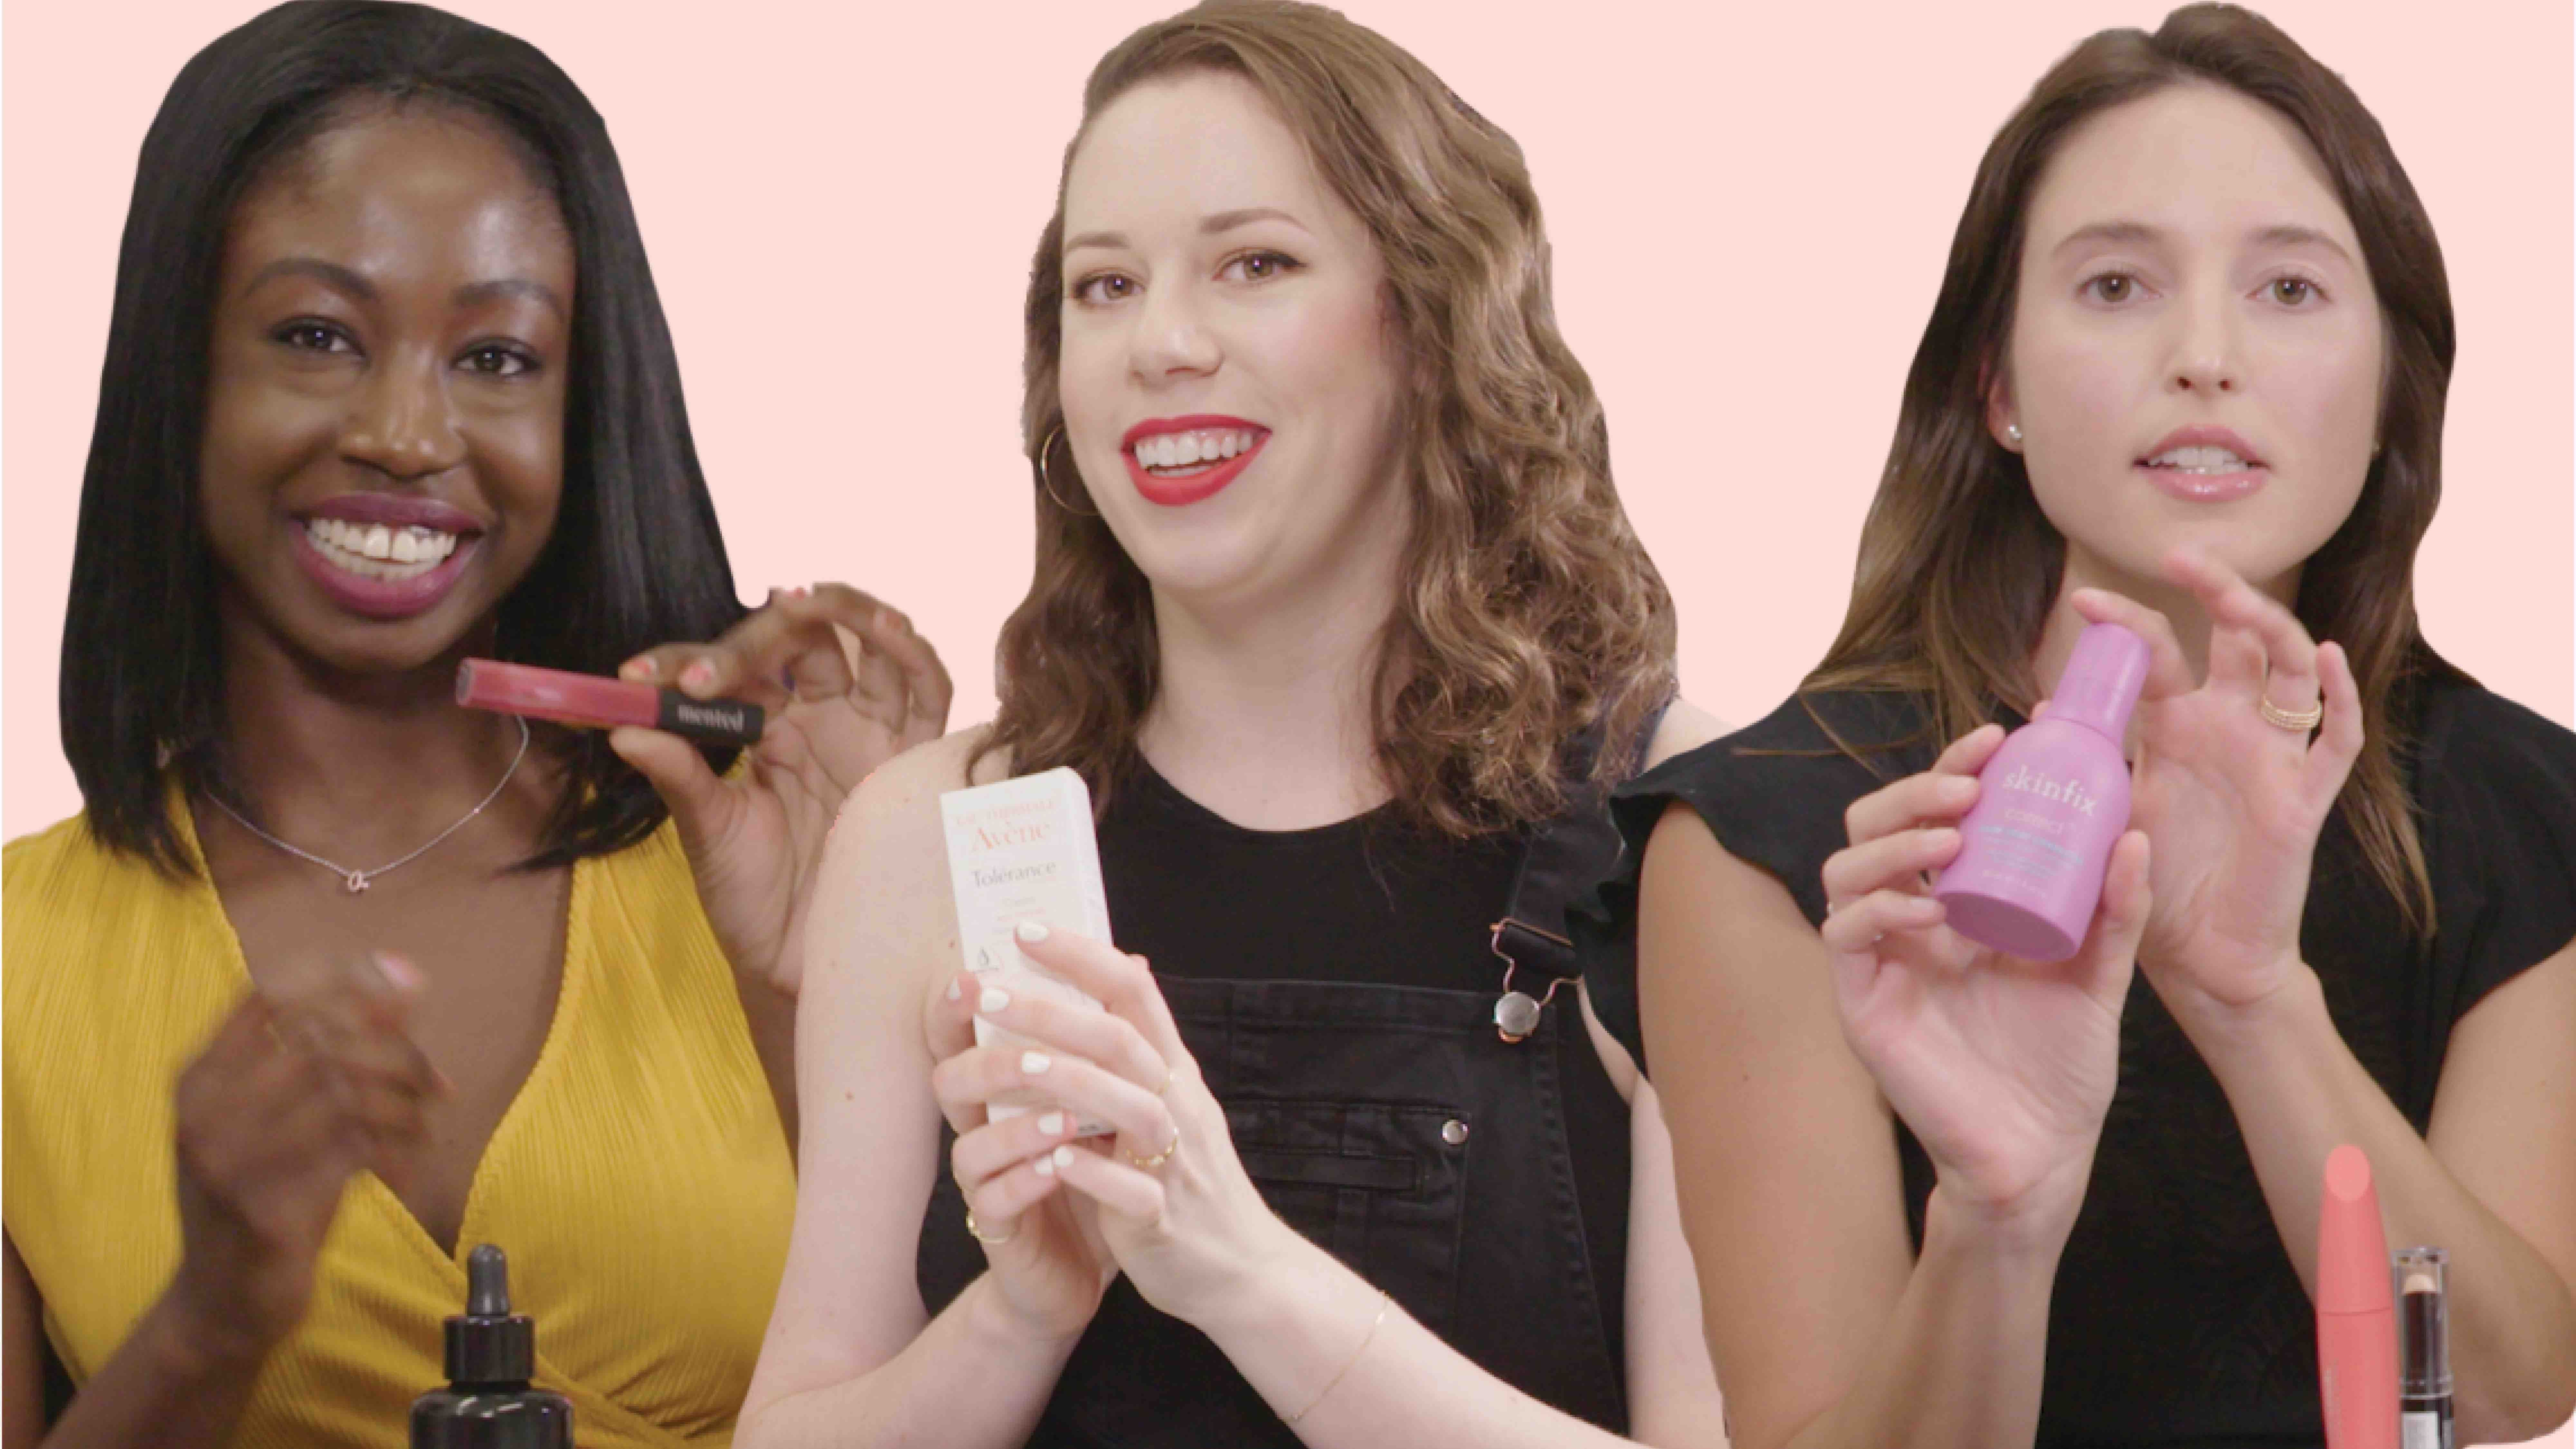 Welcome to Sh*t We Stole, Cosmopolitan's New YouTube Beauty Show